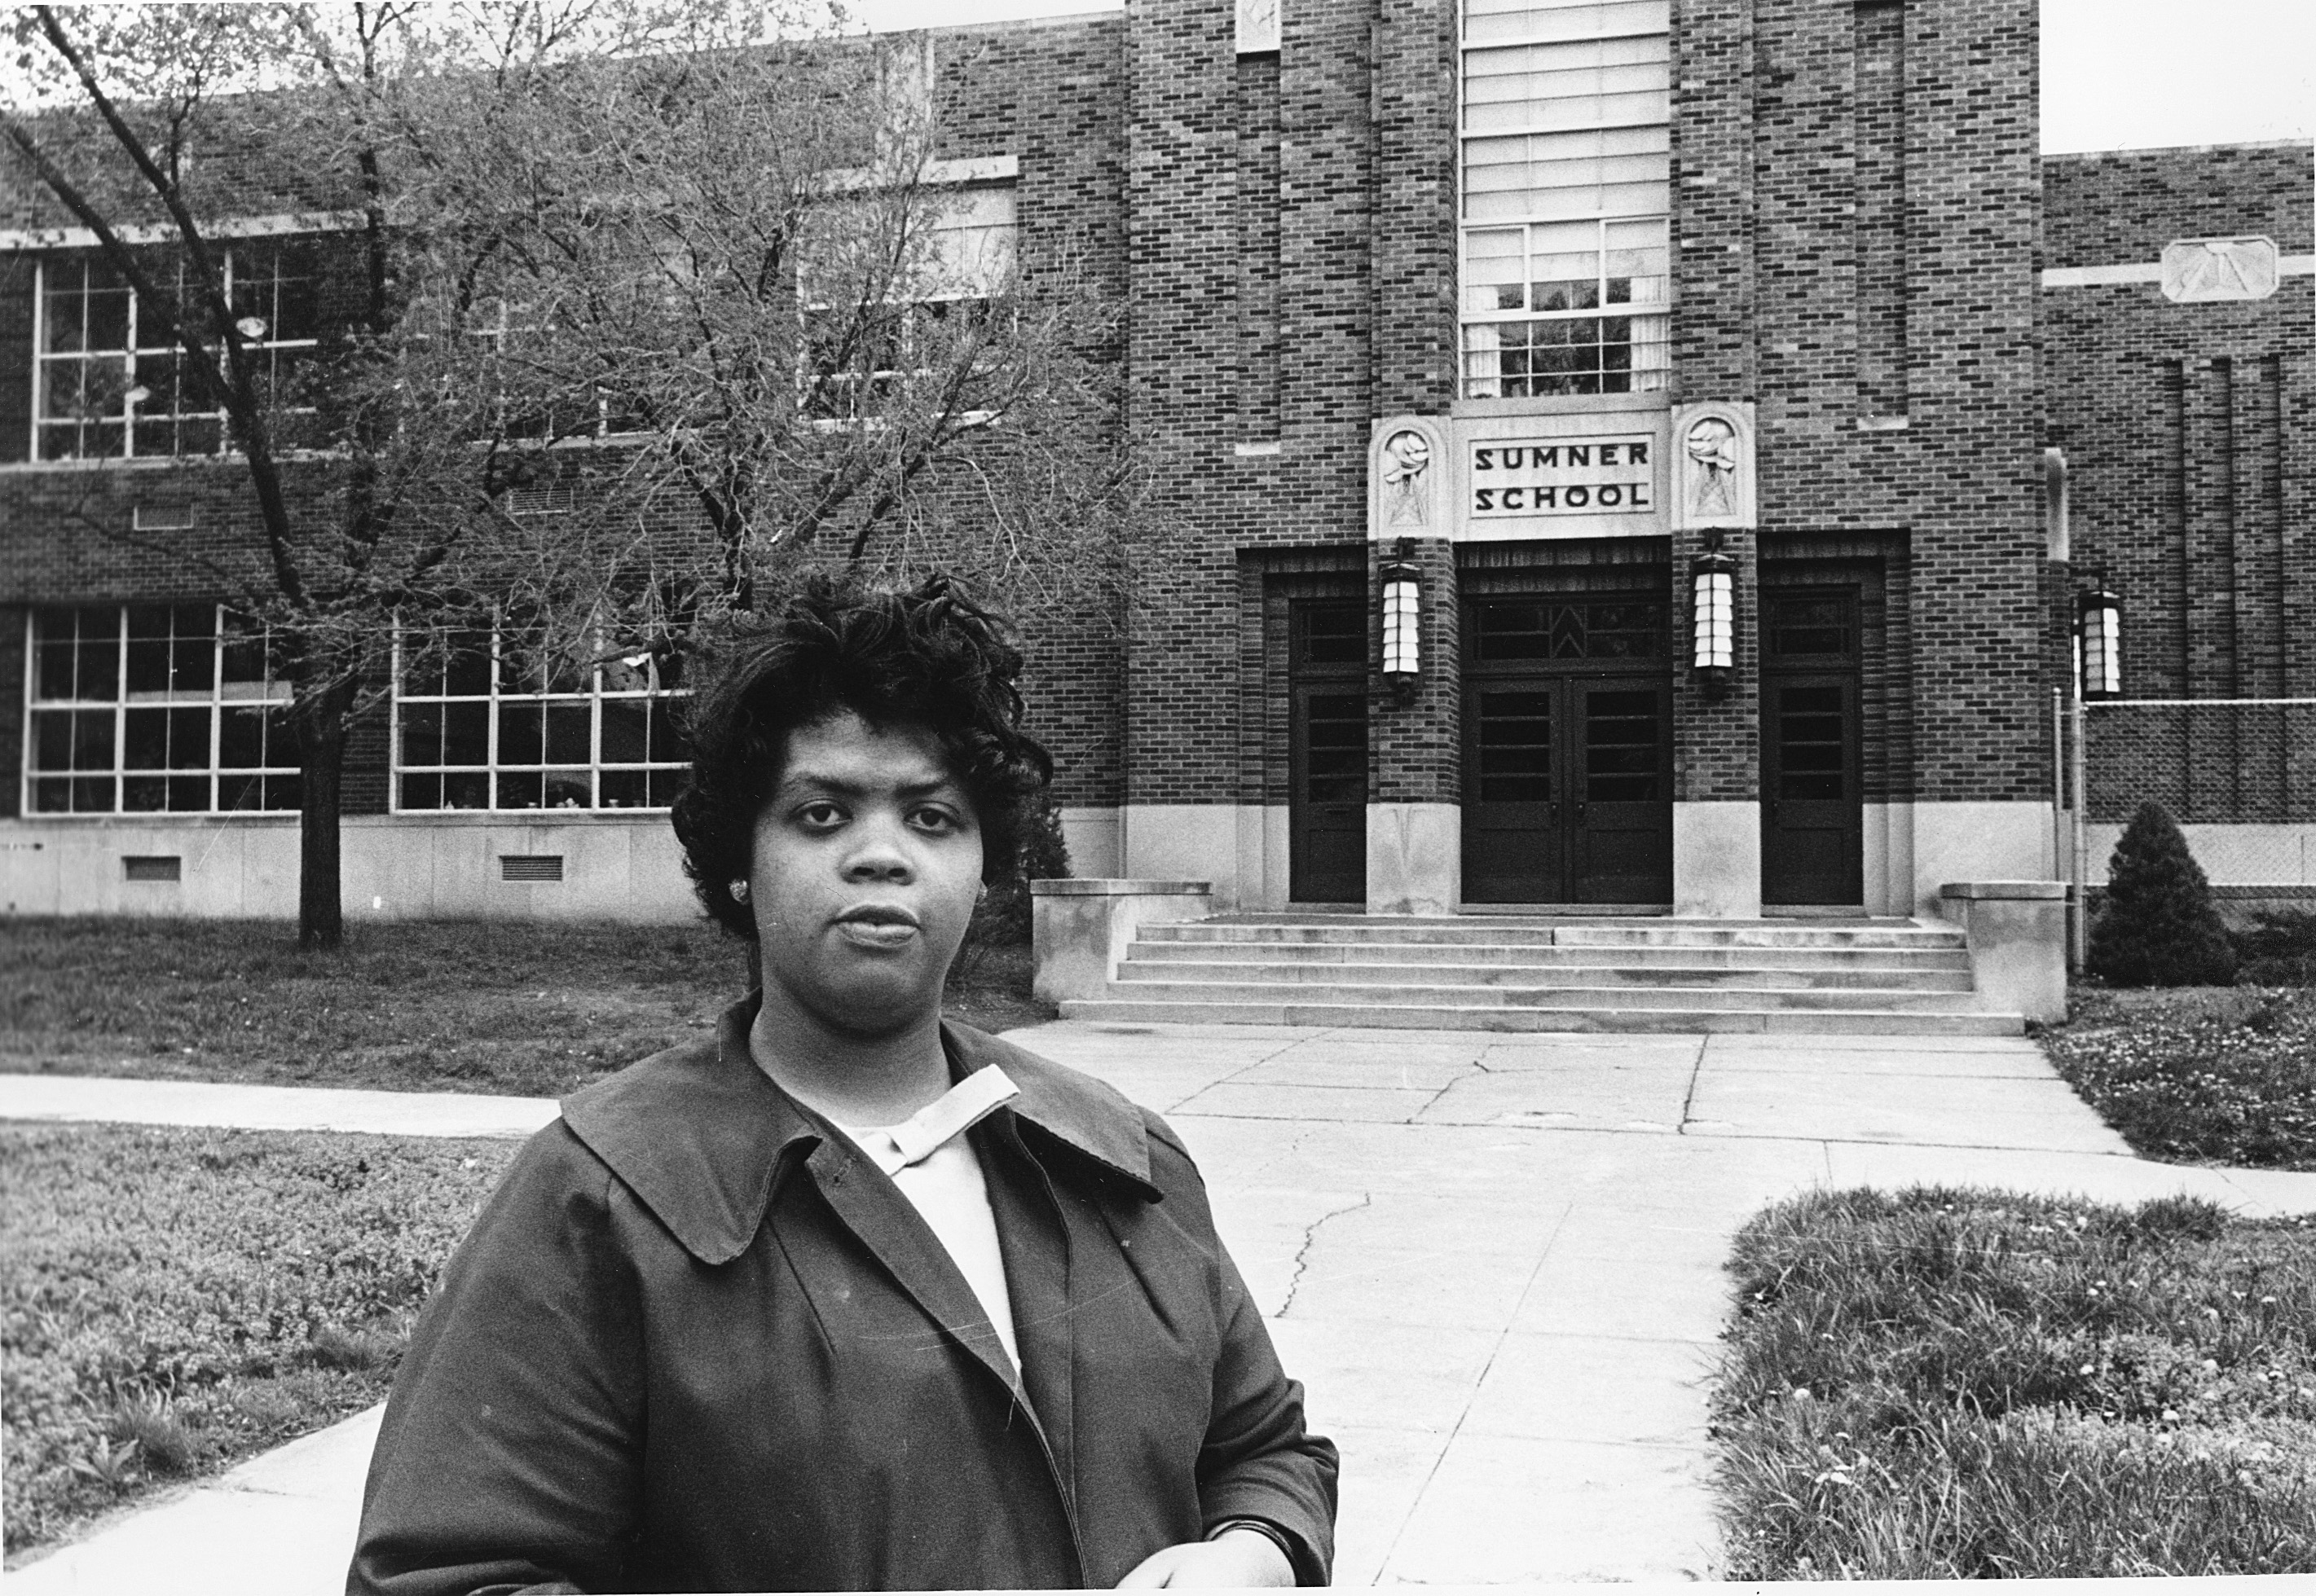 "<div class=""meta image-caption""><div class=""origin-logo origin-image none""><span>none</span></div><span class=""caption-text"">Linda Brown Smith, who as a young girl was at the center of the Brown v. Board of Education of Topeka, Kansas court case, has died. She was 76. (AP)</span></div>"